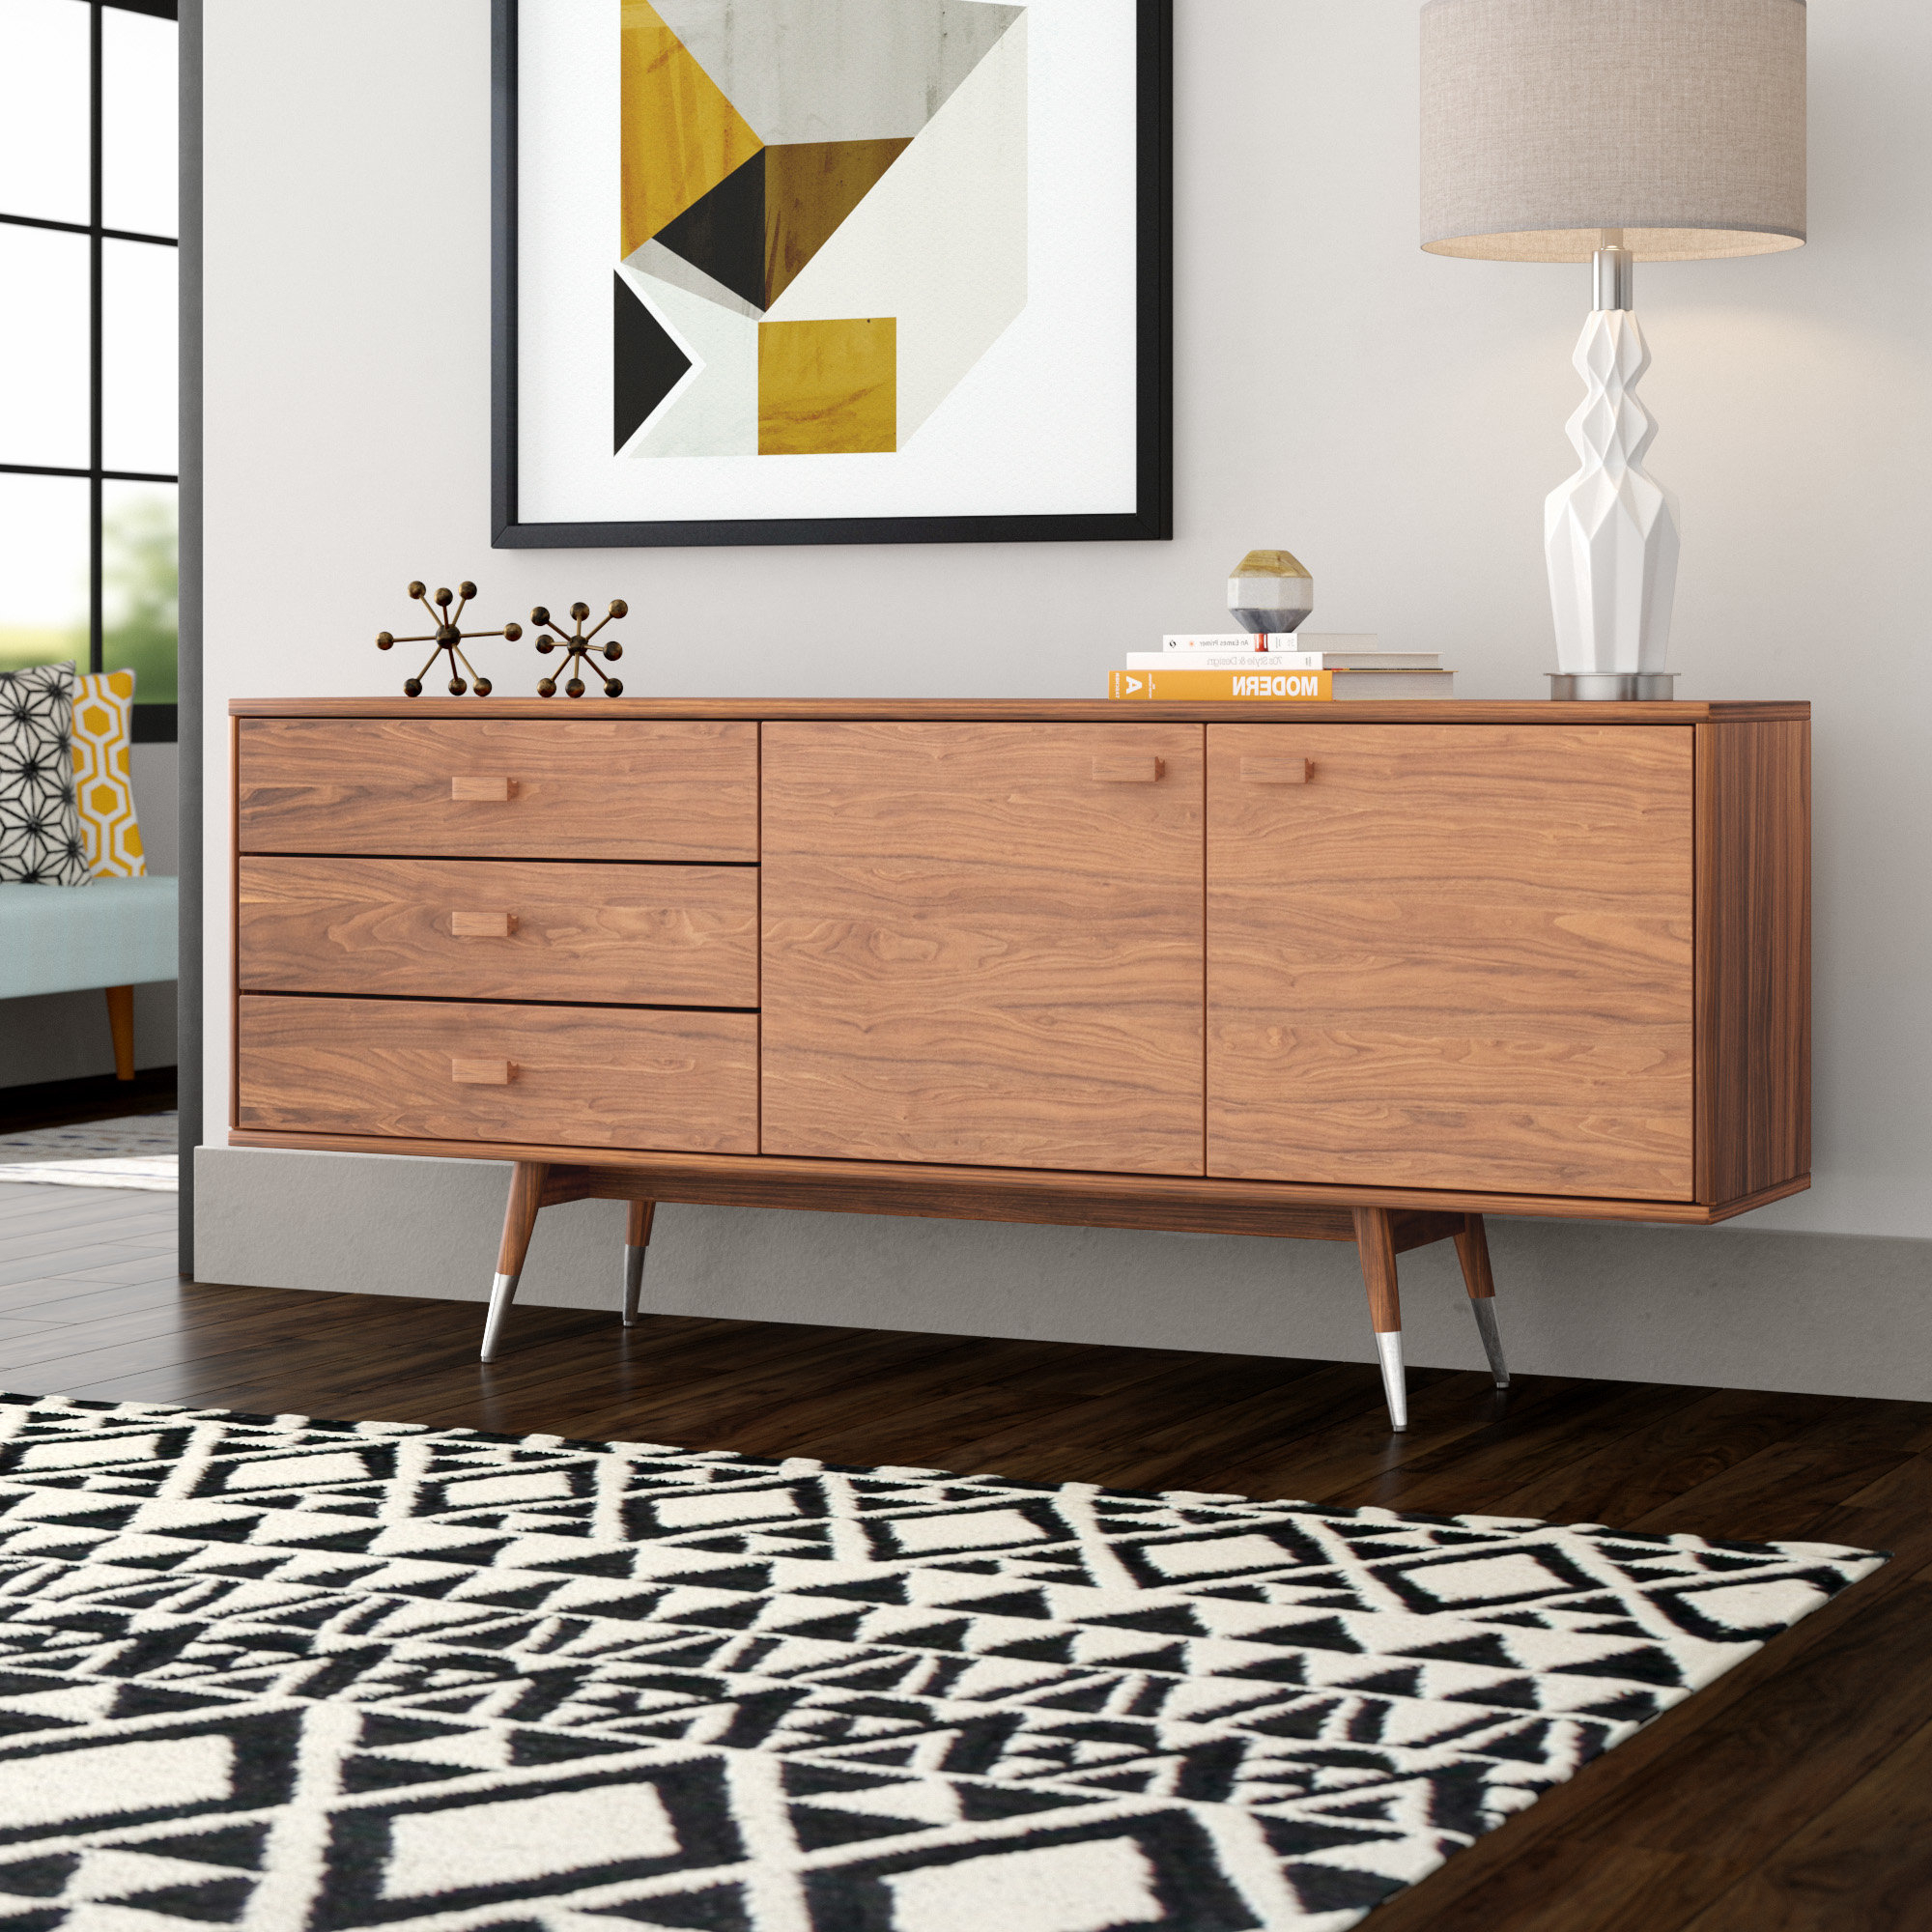 Most Current Mid Century Modern Sideboard / Credenza Sideboards & Buffets With Regard To Longley Sideboards (Gallery 6 of 20)